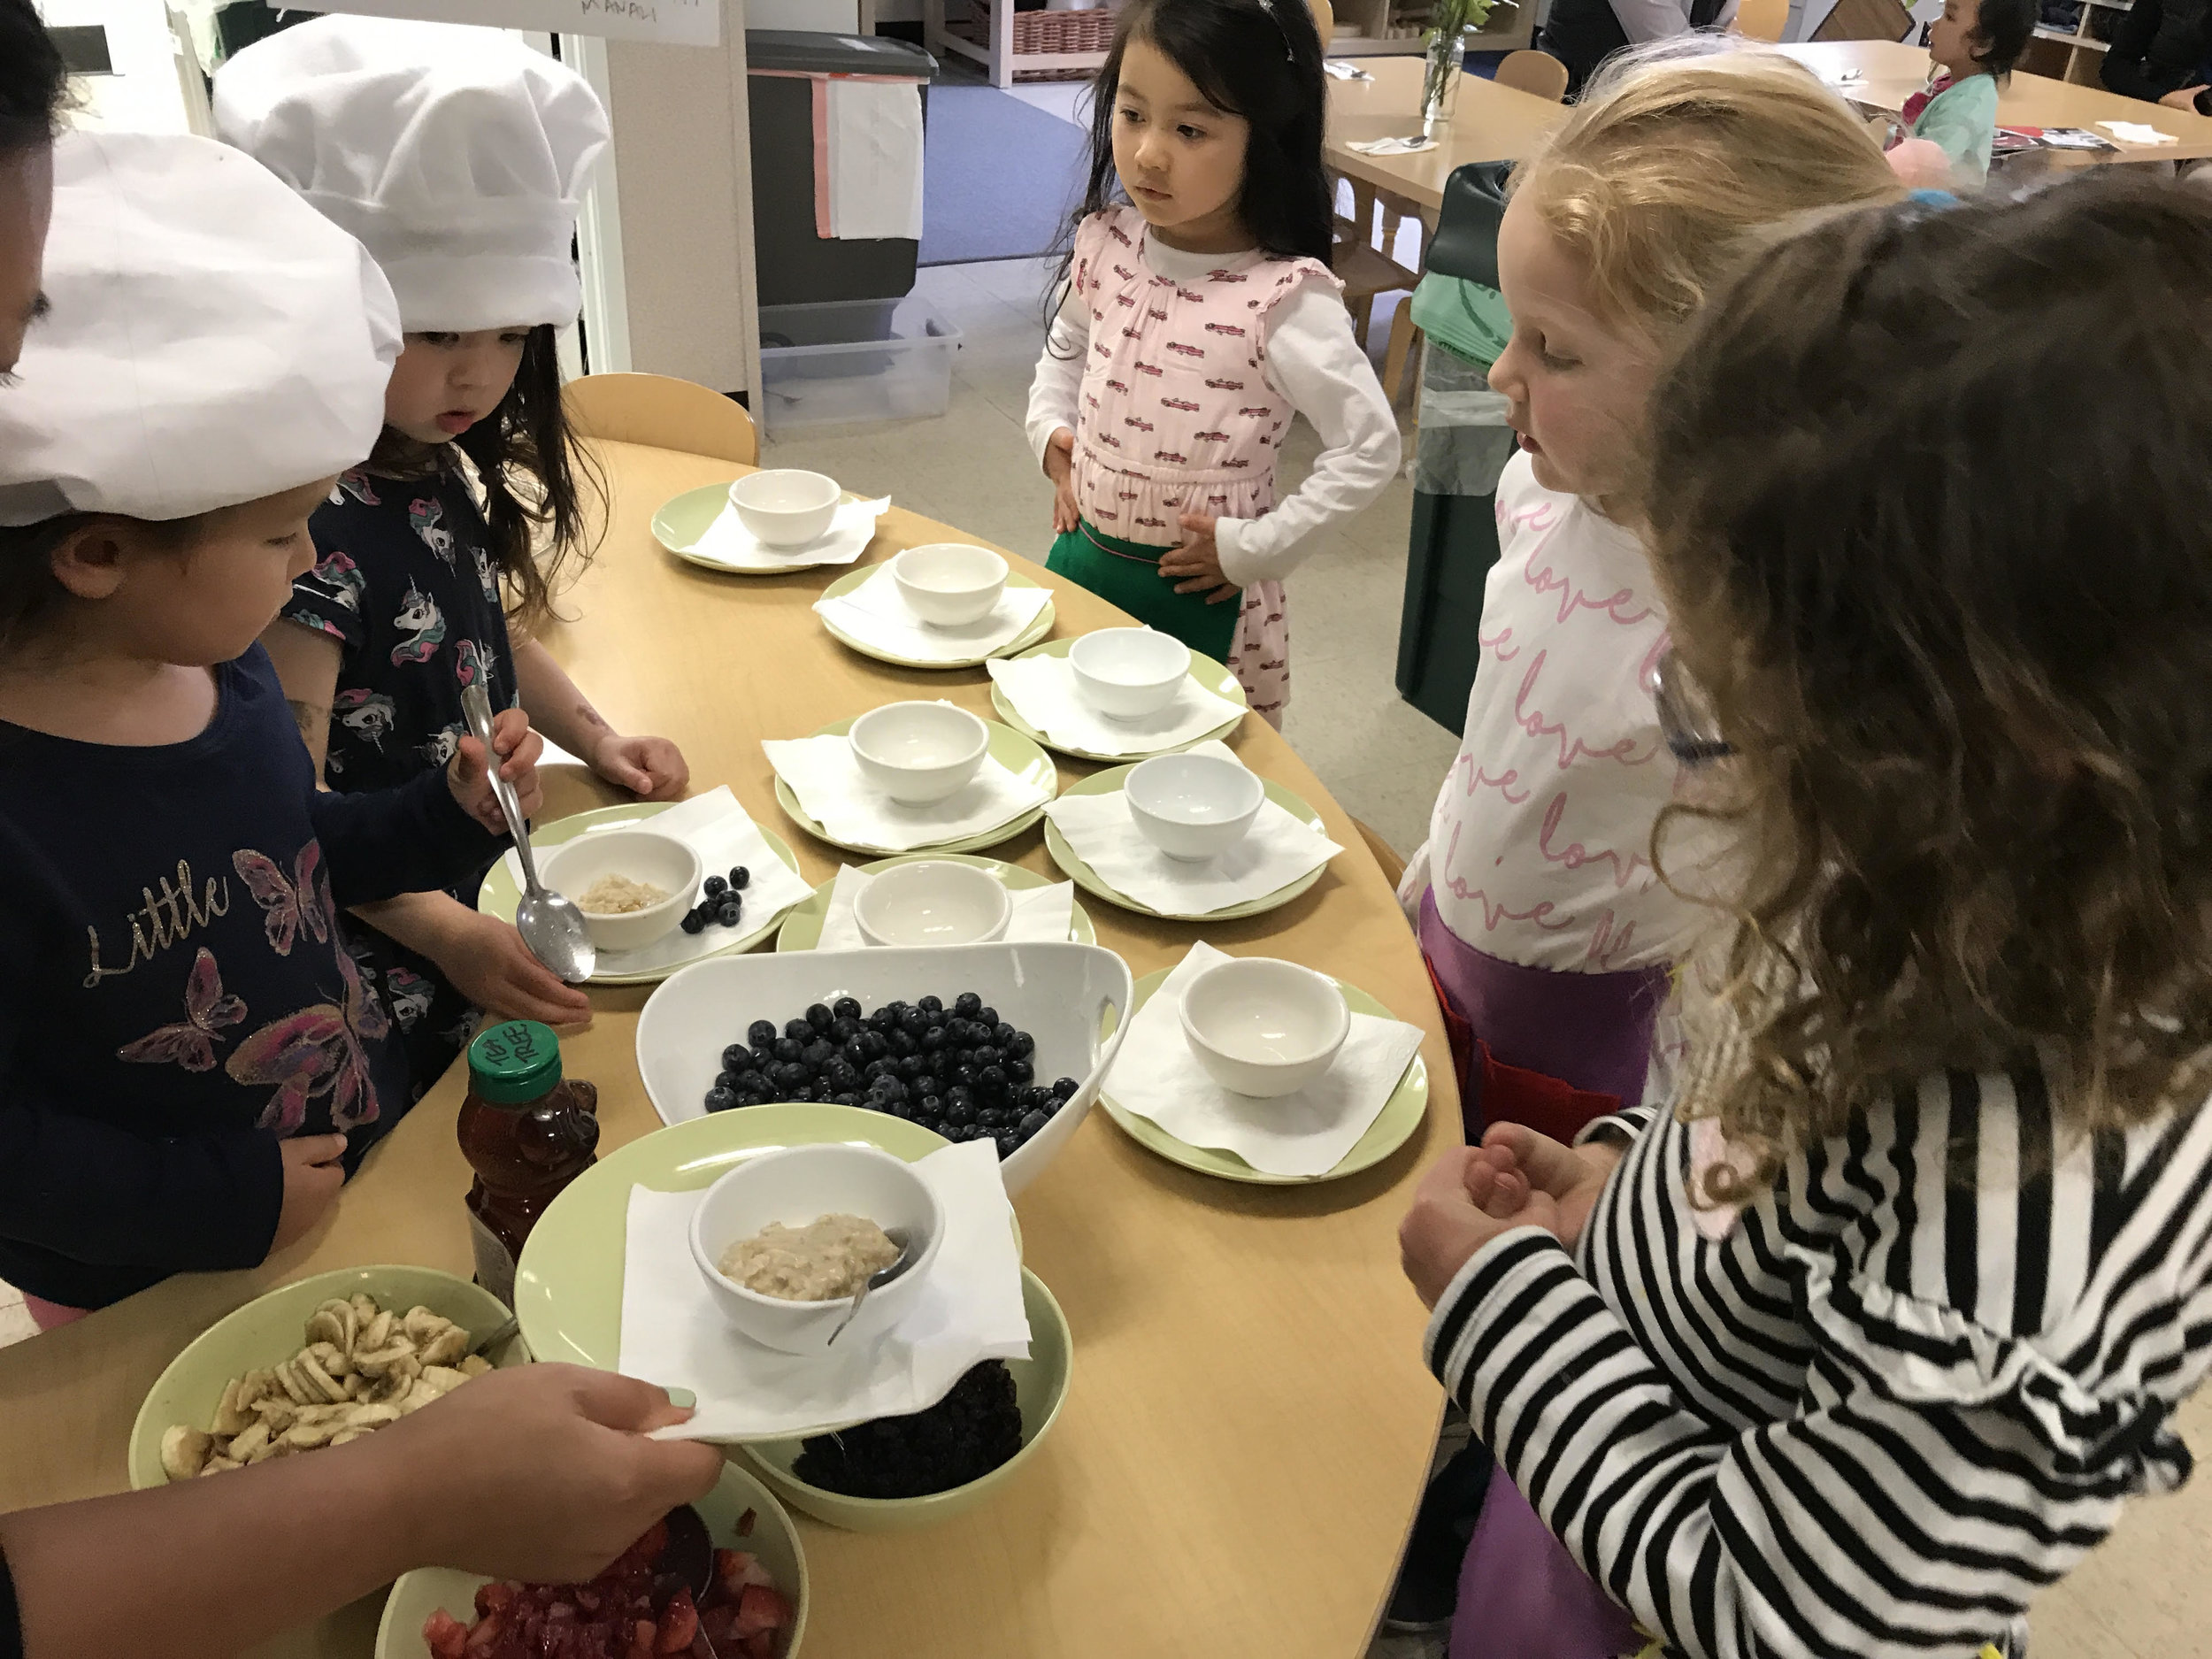 The cooks were busy in the kitchen making the dish of the day: oatmeal.